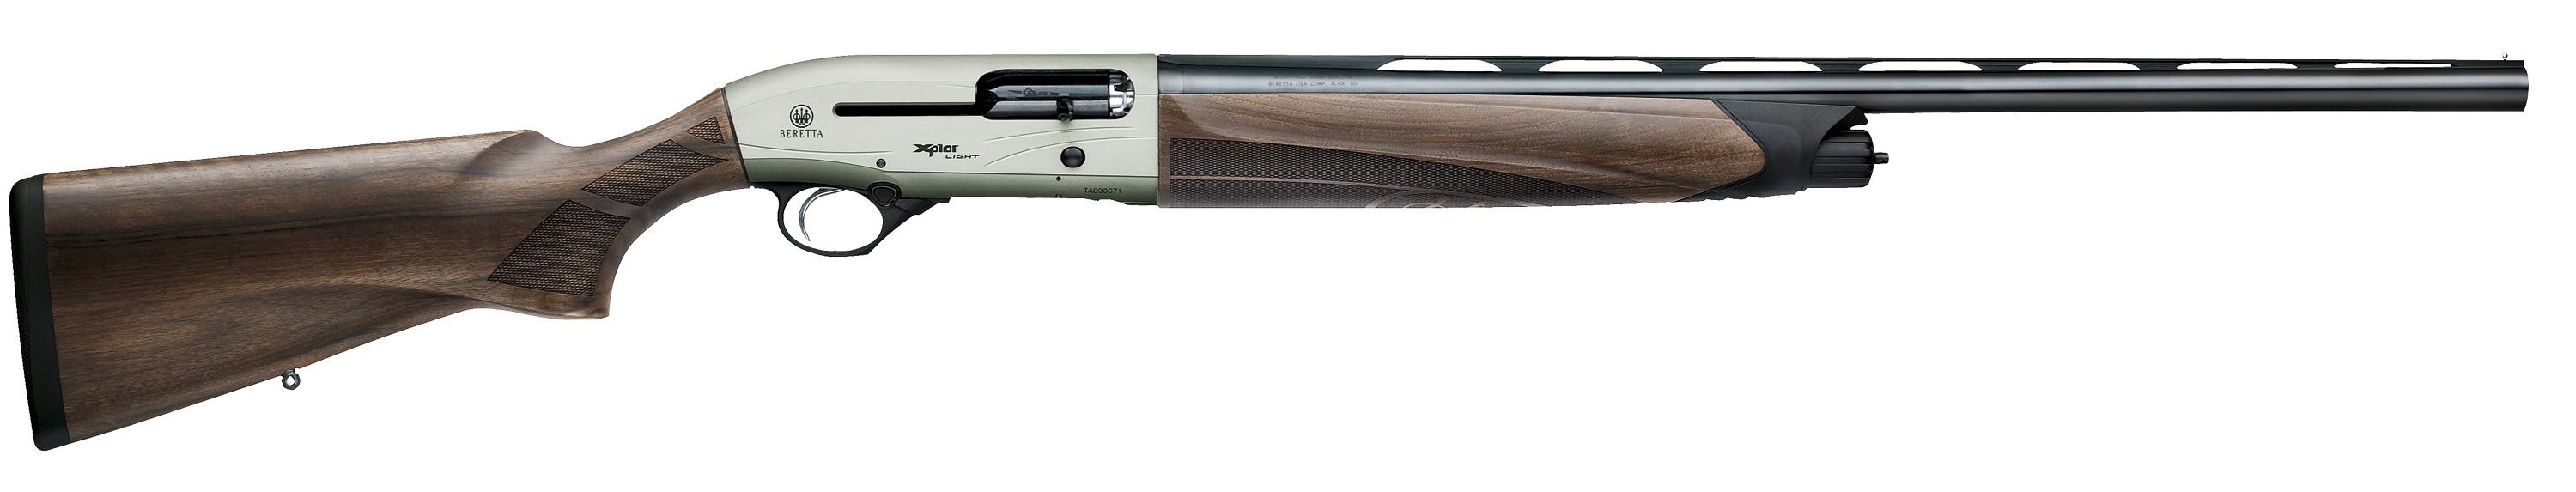 Beretta A400 Xplor Light Hagelgevär